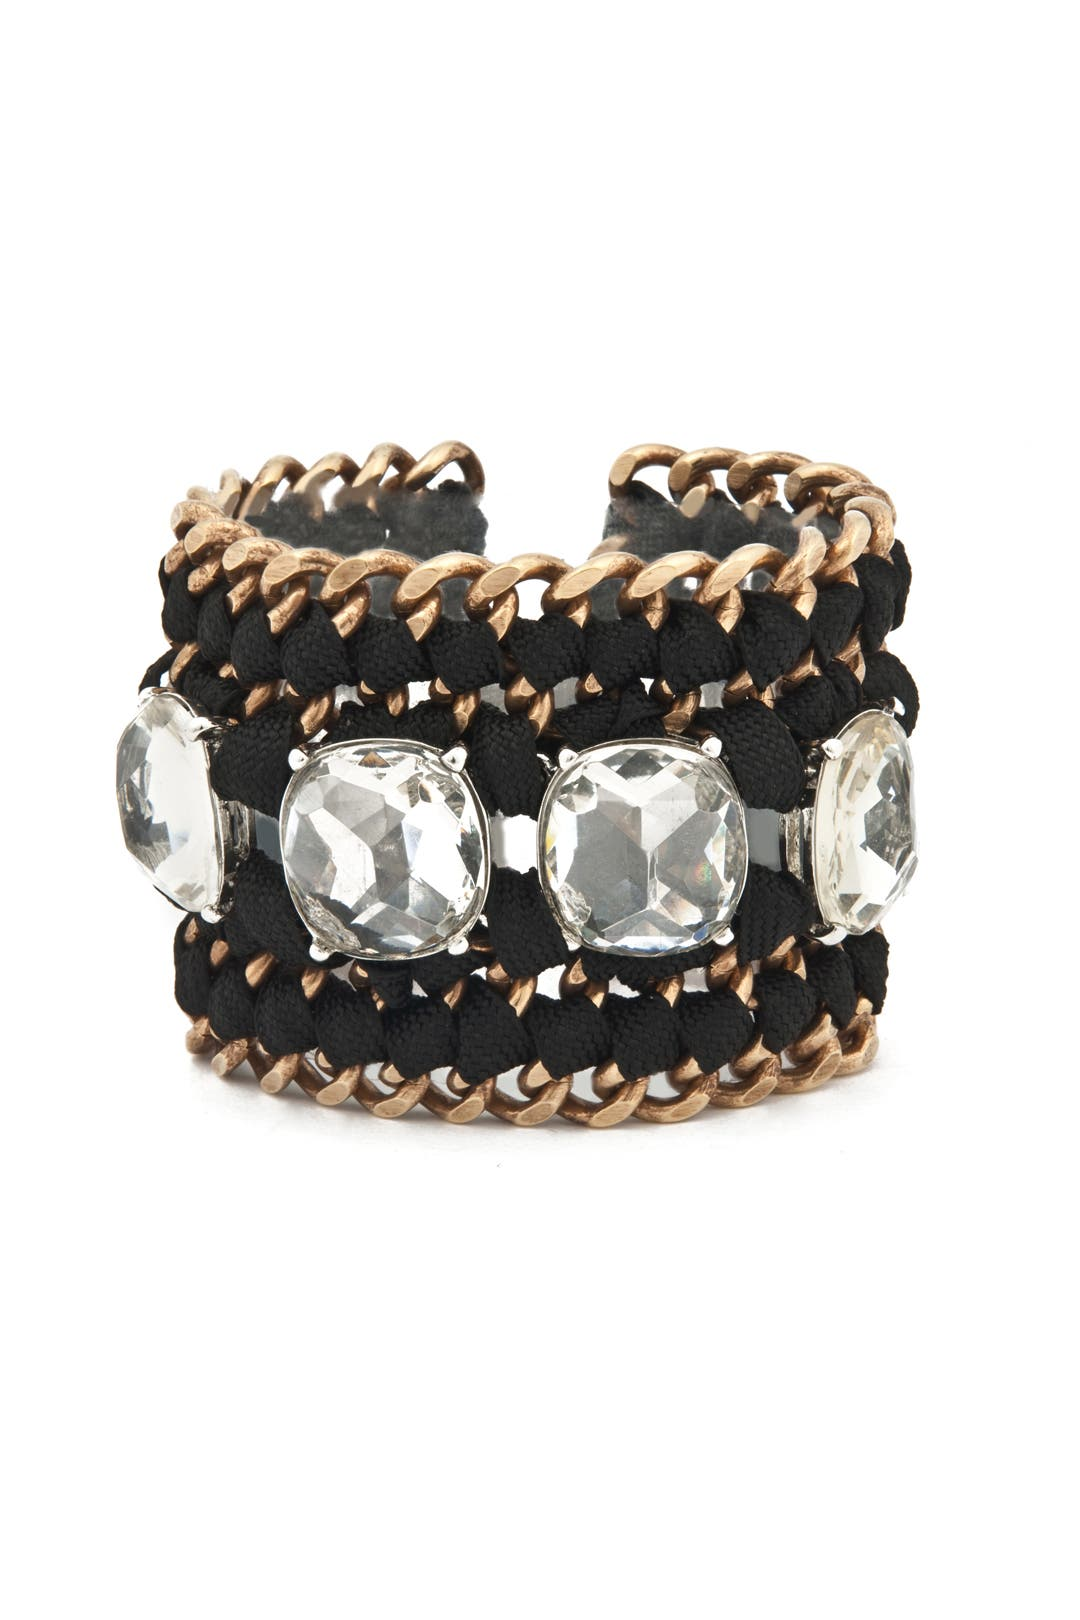 Rebel Remix Bracelet by Ciner